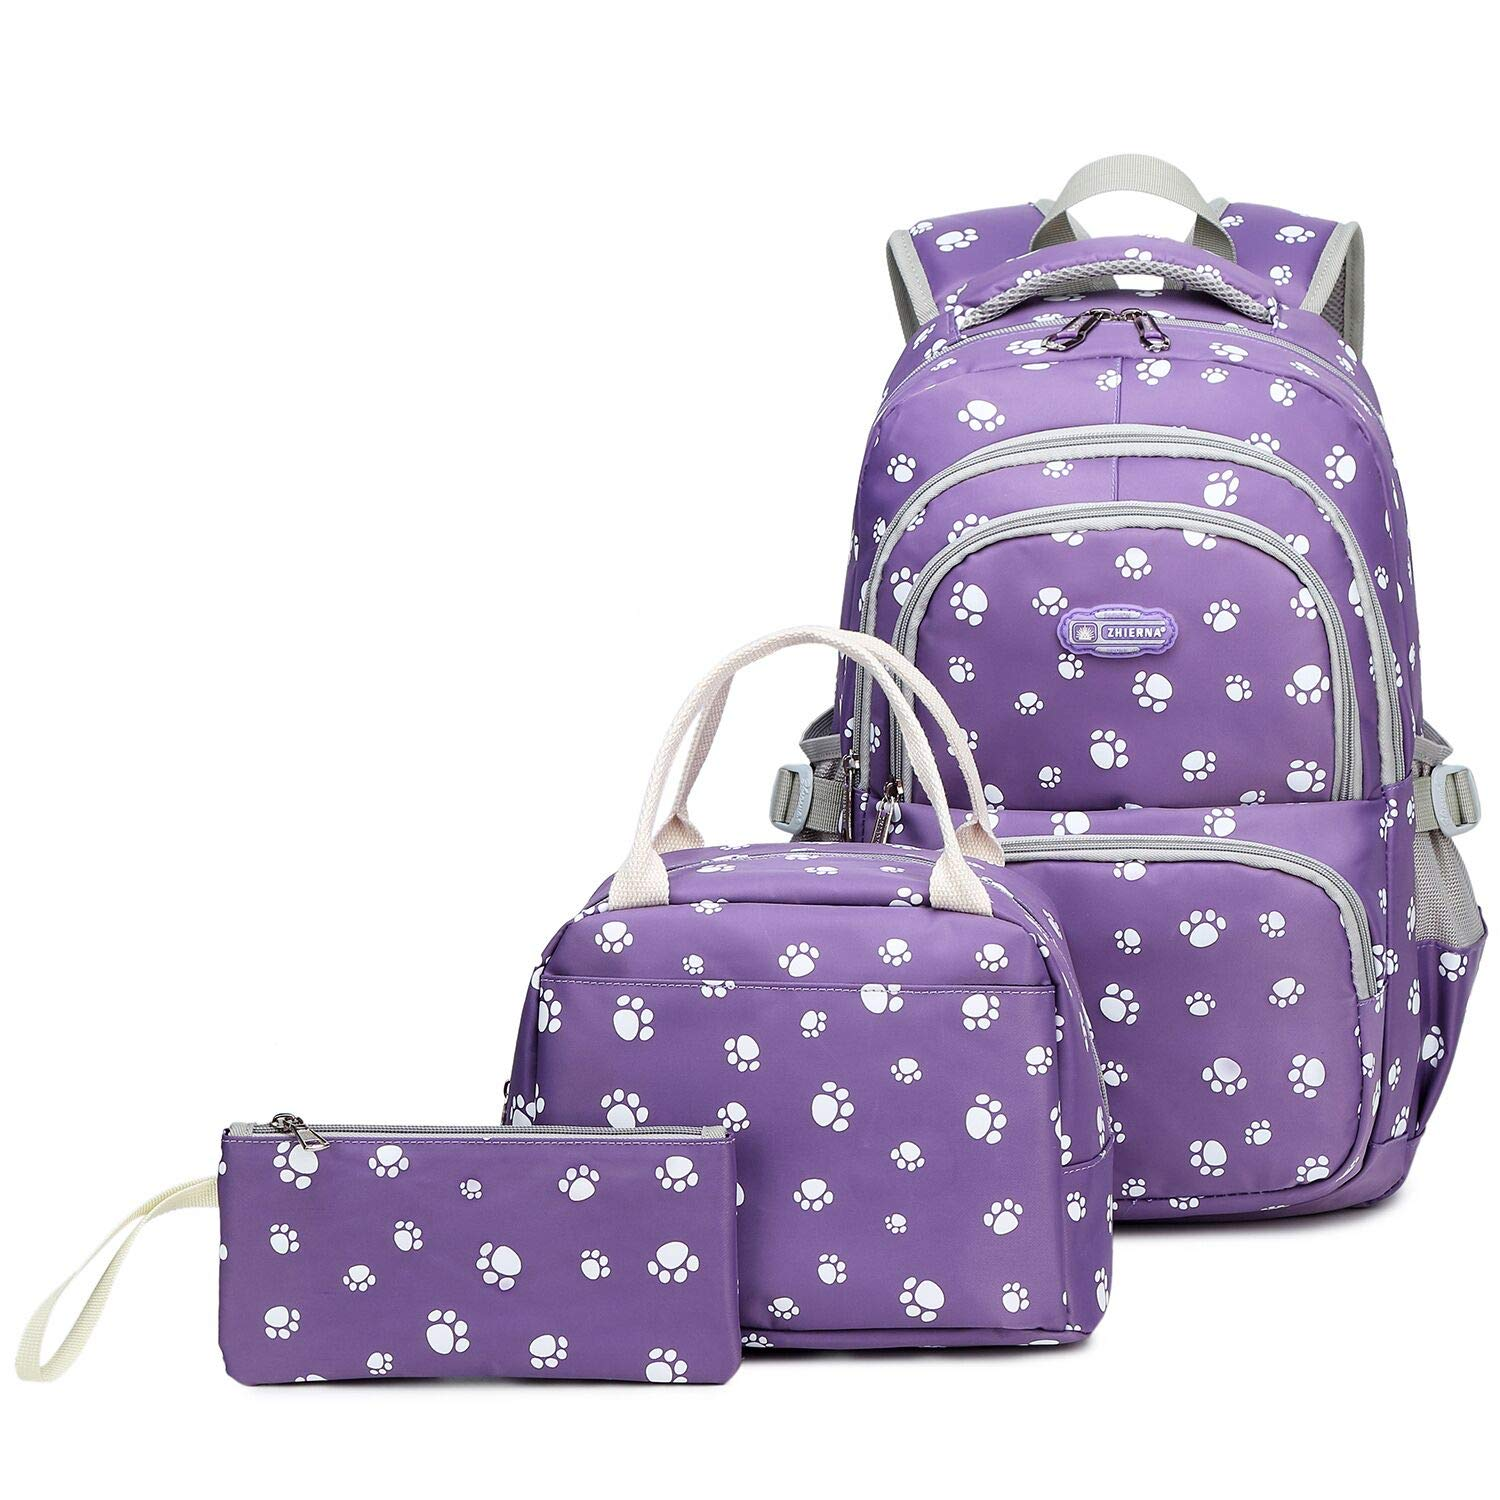 Goldwheat Girls School Backpacks with Lunch Bag and Pencil Case Kids Pawprint Bookbag 3 in 1 (Purple) by goldwheat